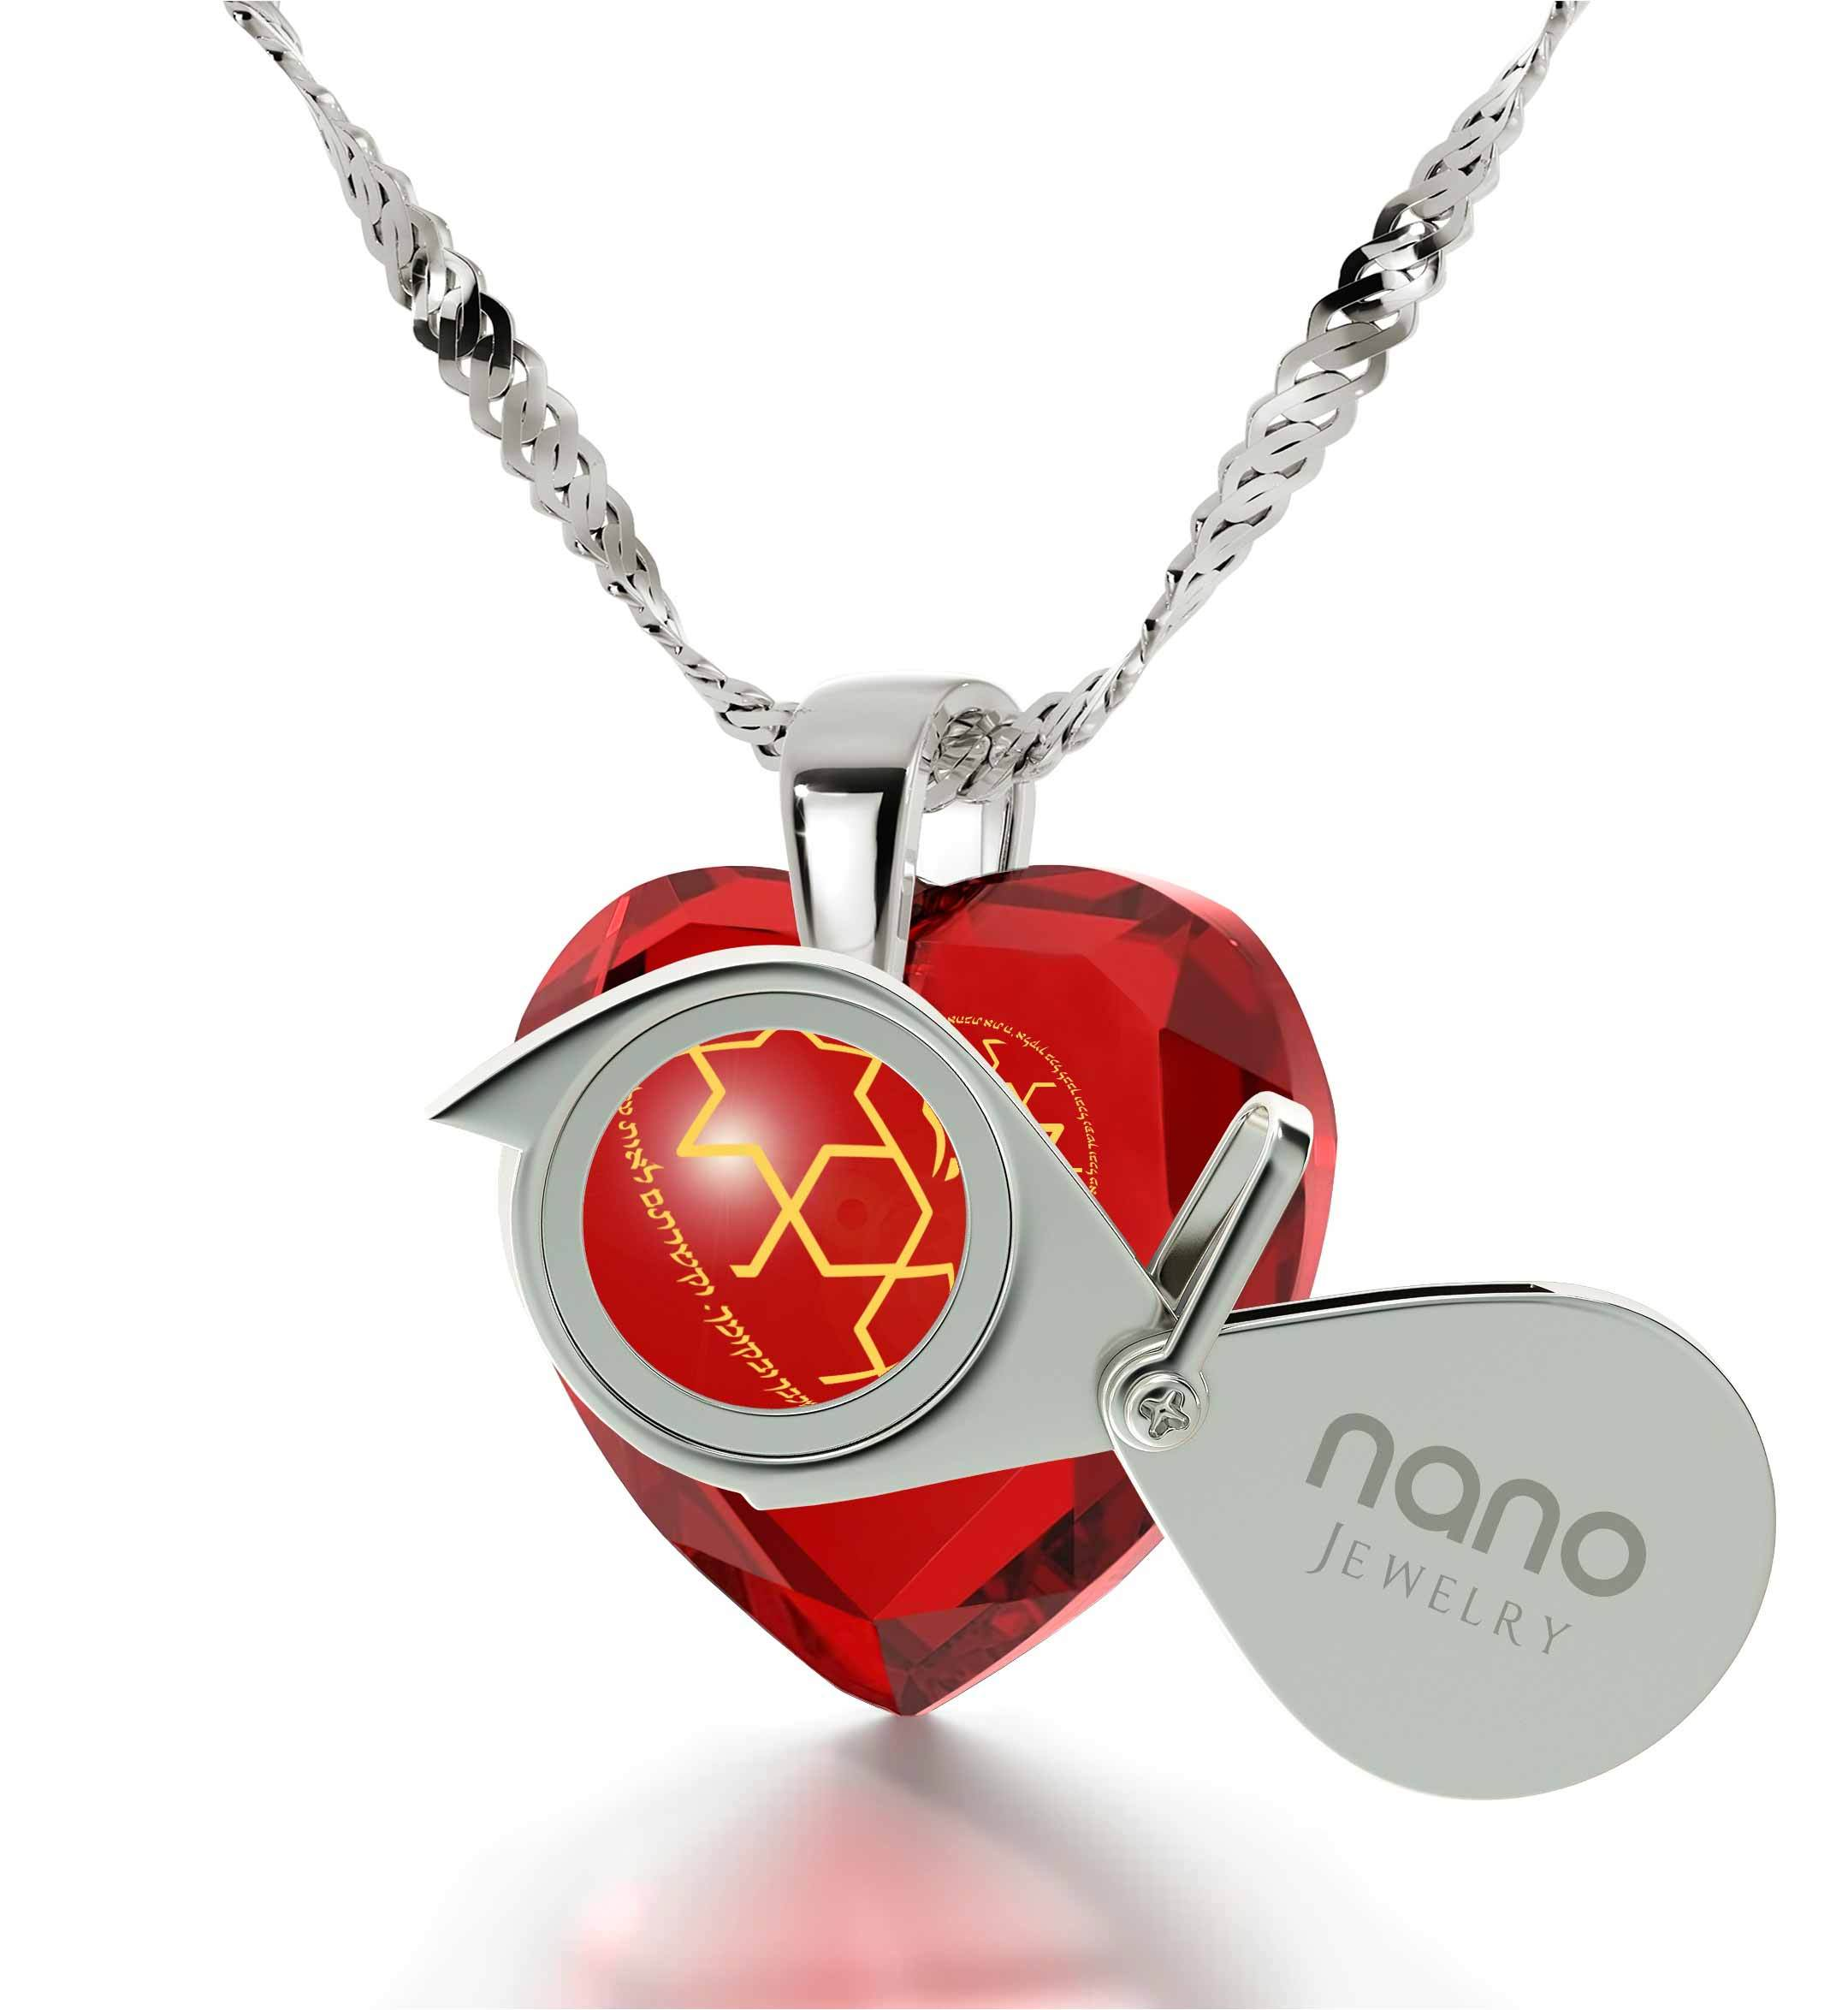 """Shema Yisrael"" Engraved in 24k, Israeli Jewelry with Ruby Stone Pendant, Judaica Gifts"